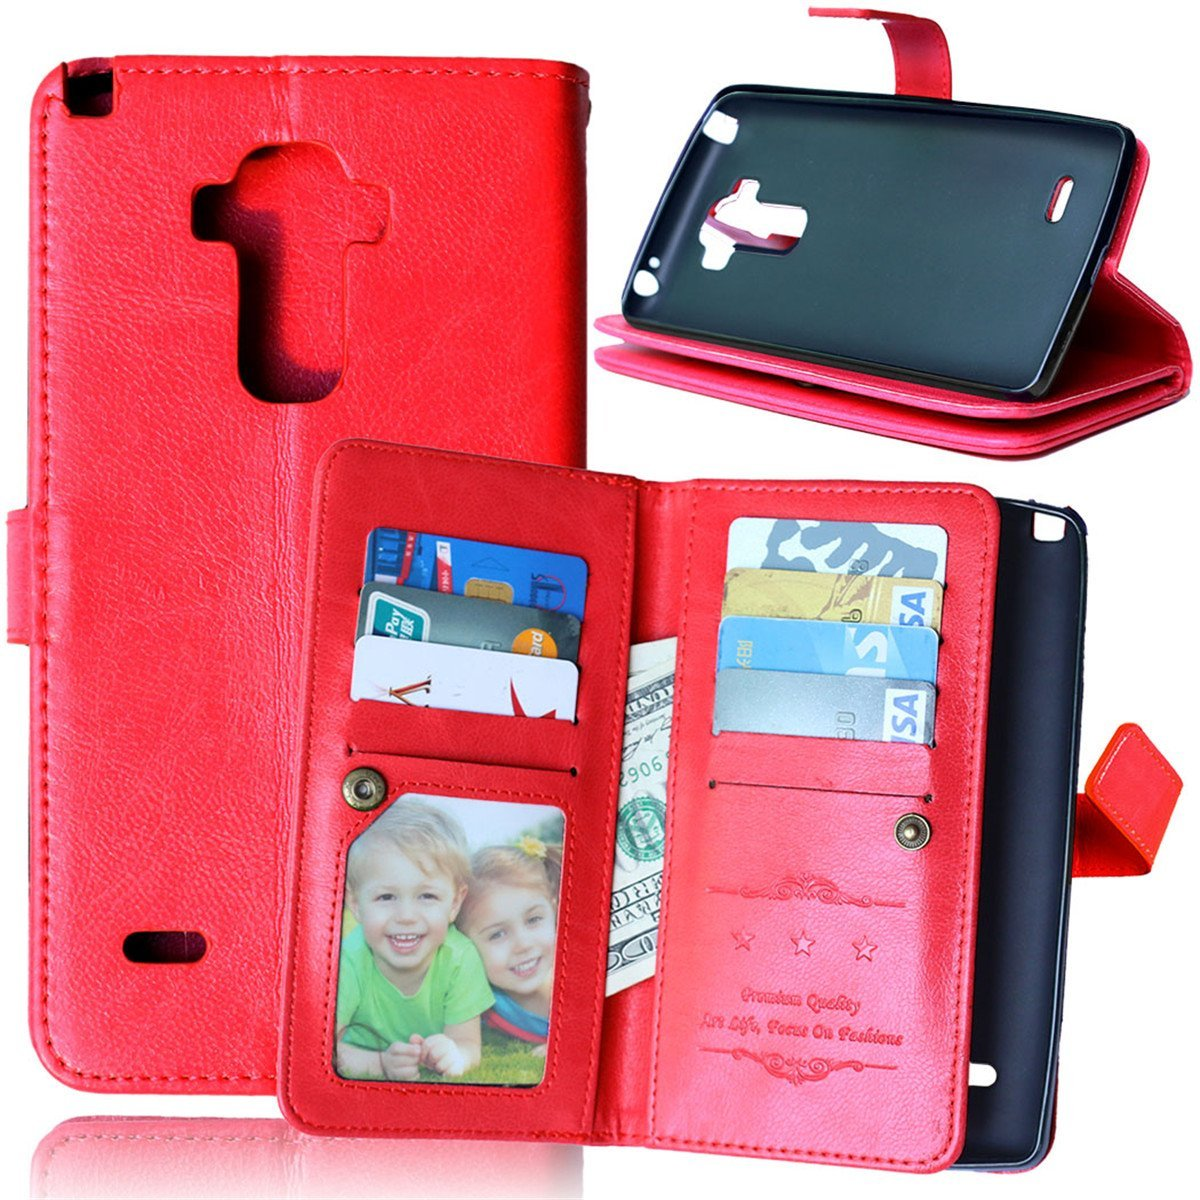 LG G Stylo Case,Gift_Source [Red] Premium Pu Leather Magnet Folio Wallet Credit Card Holder Flip Cover Case Built-in 9 Card Slots & Stand Case for LG G Stylo / LG G4 Stylus (LS770) (G4 Note)